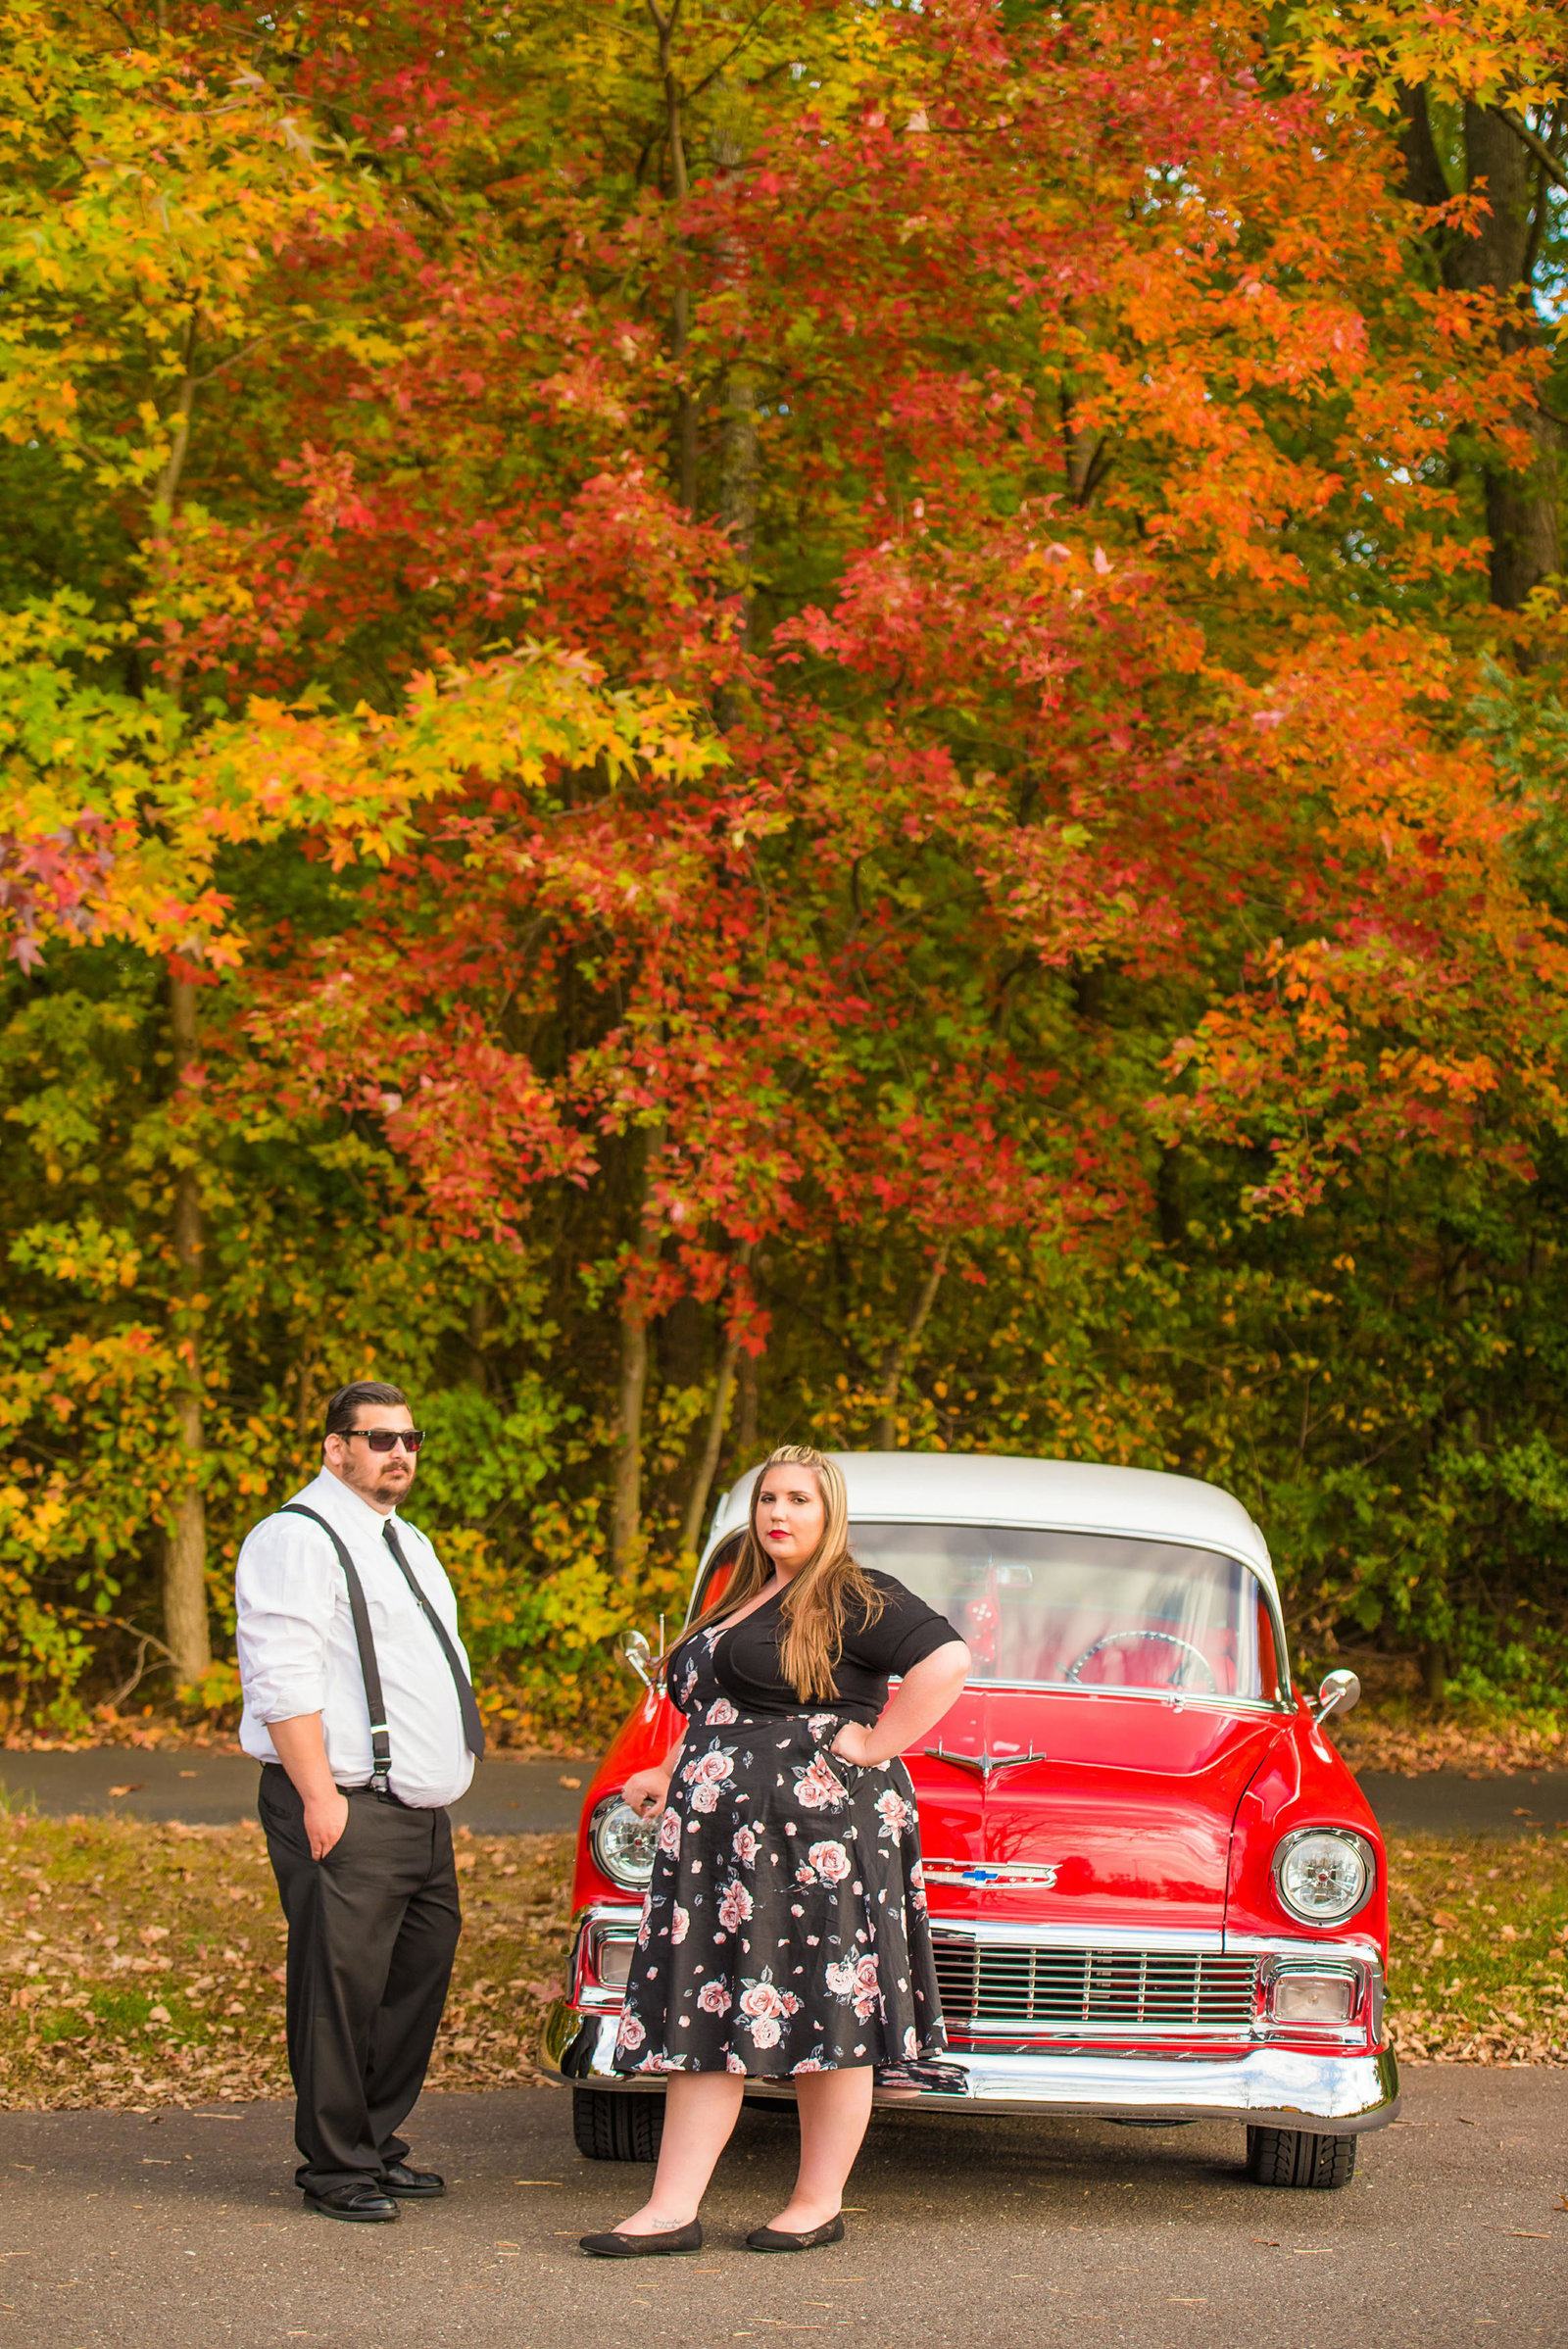 Retro_Pinup_Car_engagement_session_Nj074